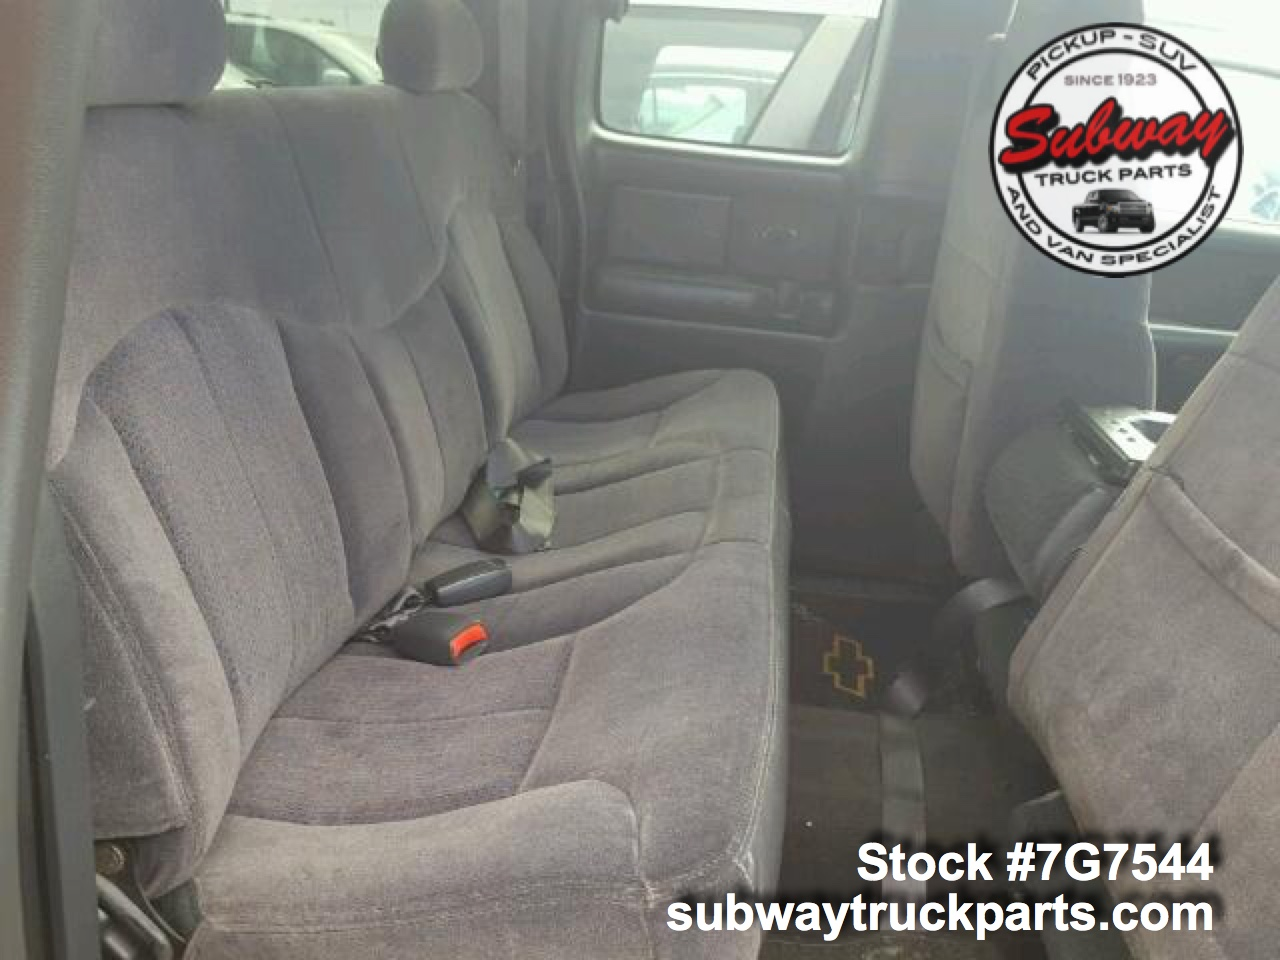 Used Parts 2002 Chevrolet Silverado 1500 4.8L 4x2 | Subway ...